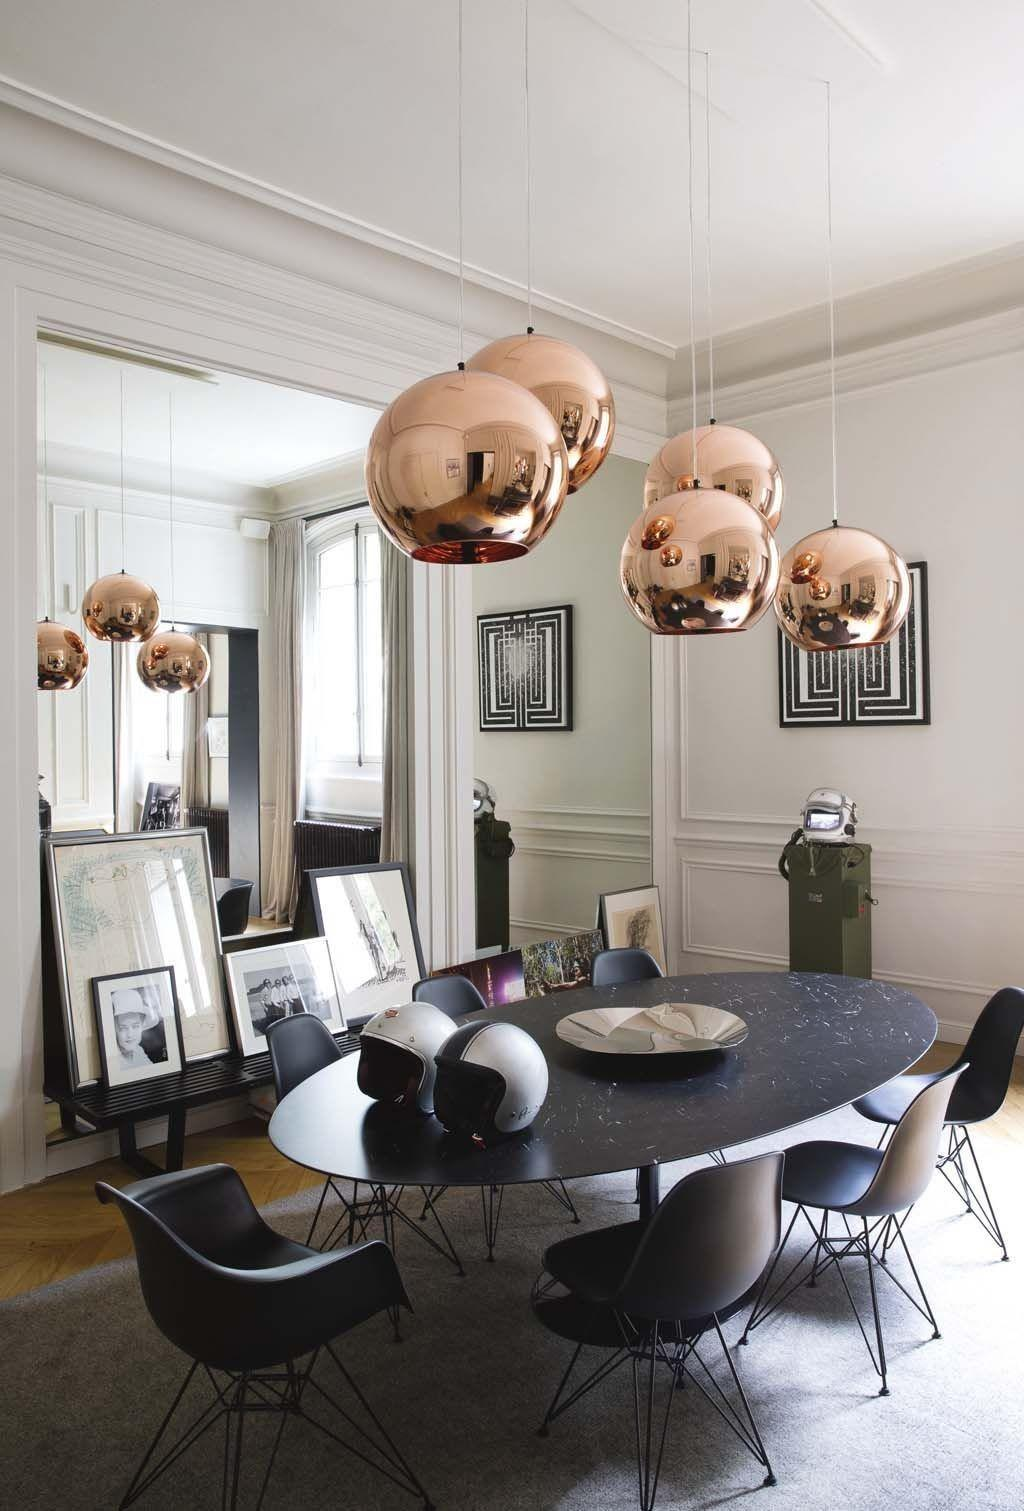 Top 2017 Design Trends Your Home